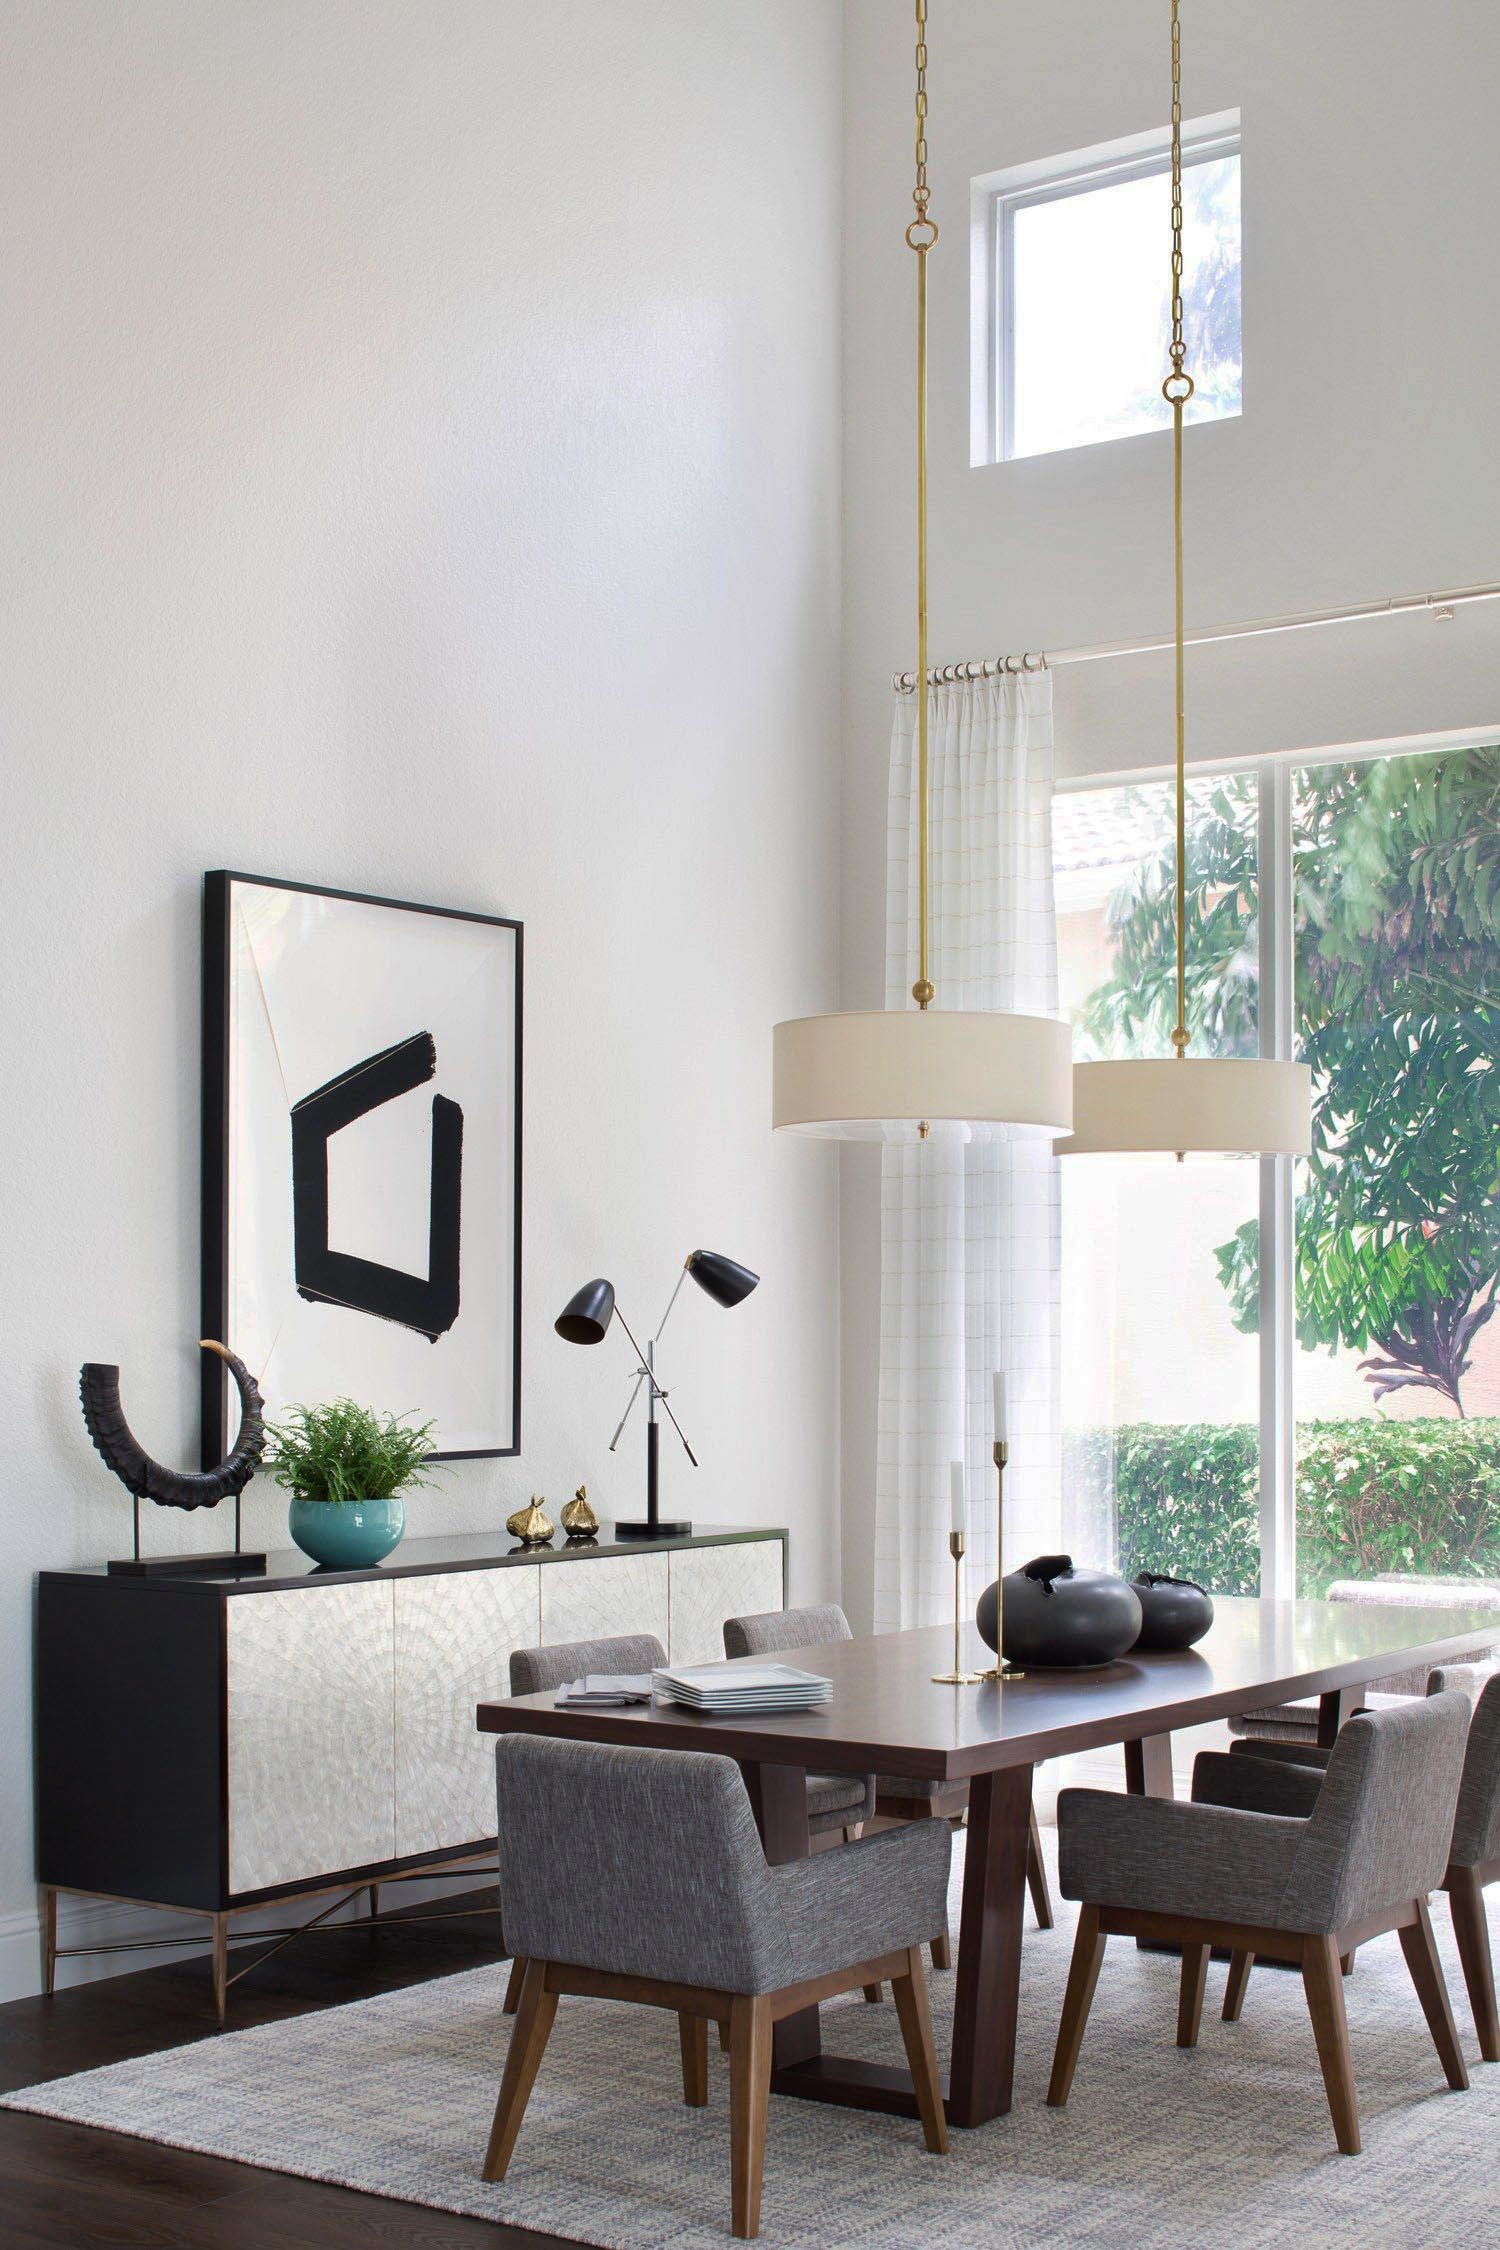 outstanding modern dining room ideas images that will blow your mind rh pinterest com